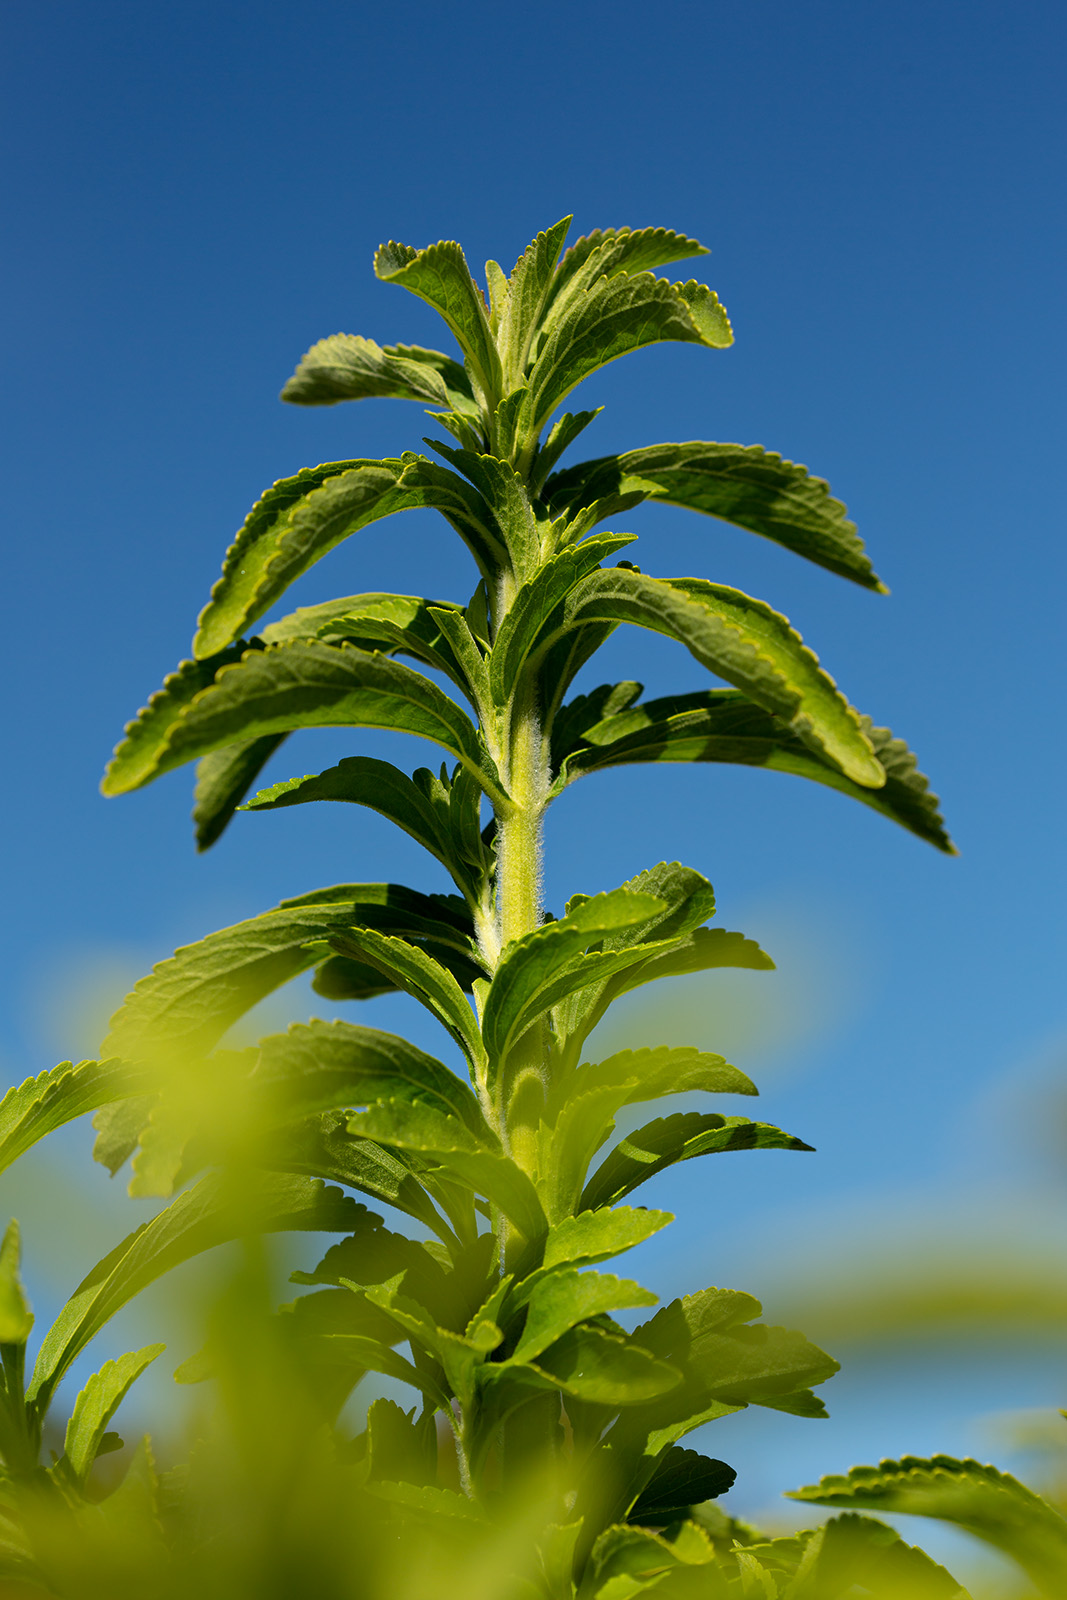 Foliage and stem of <i>Stevia rebaudiana</i>